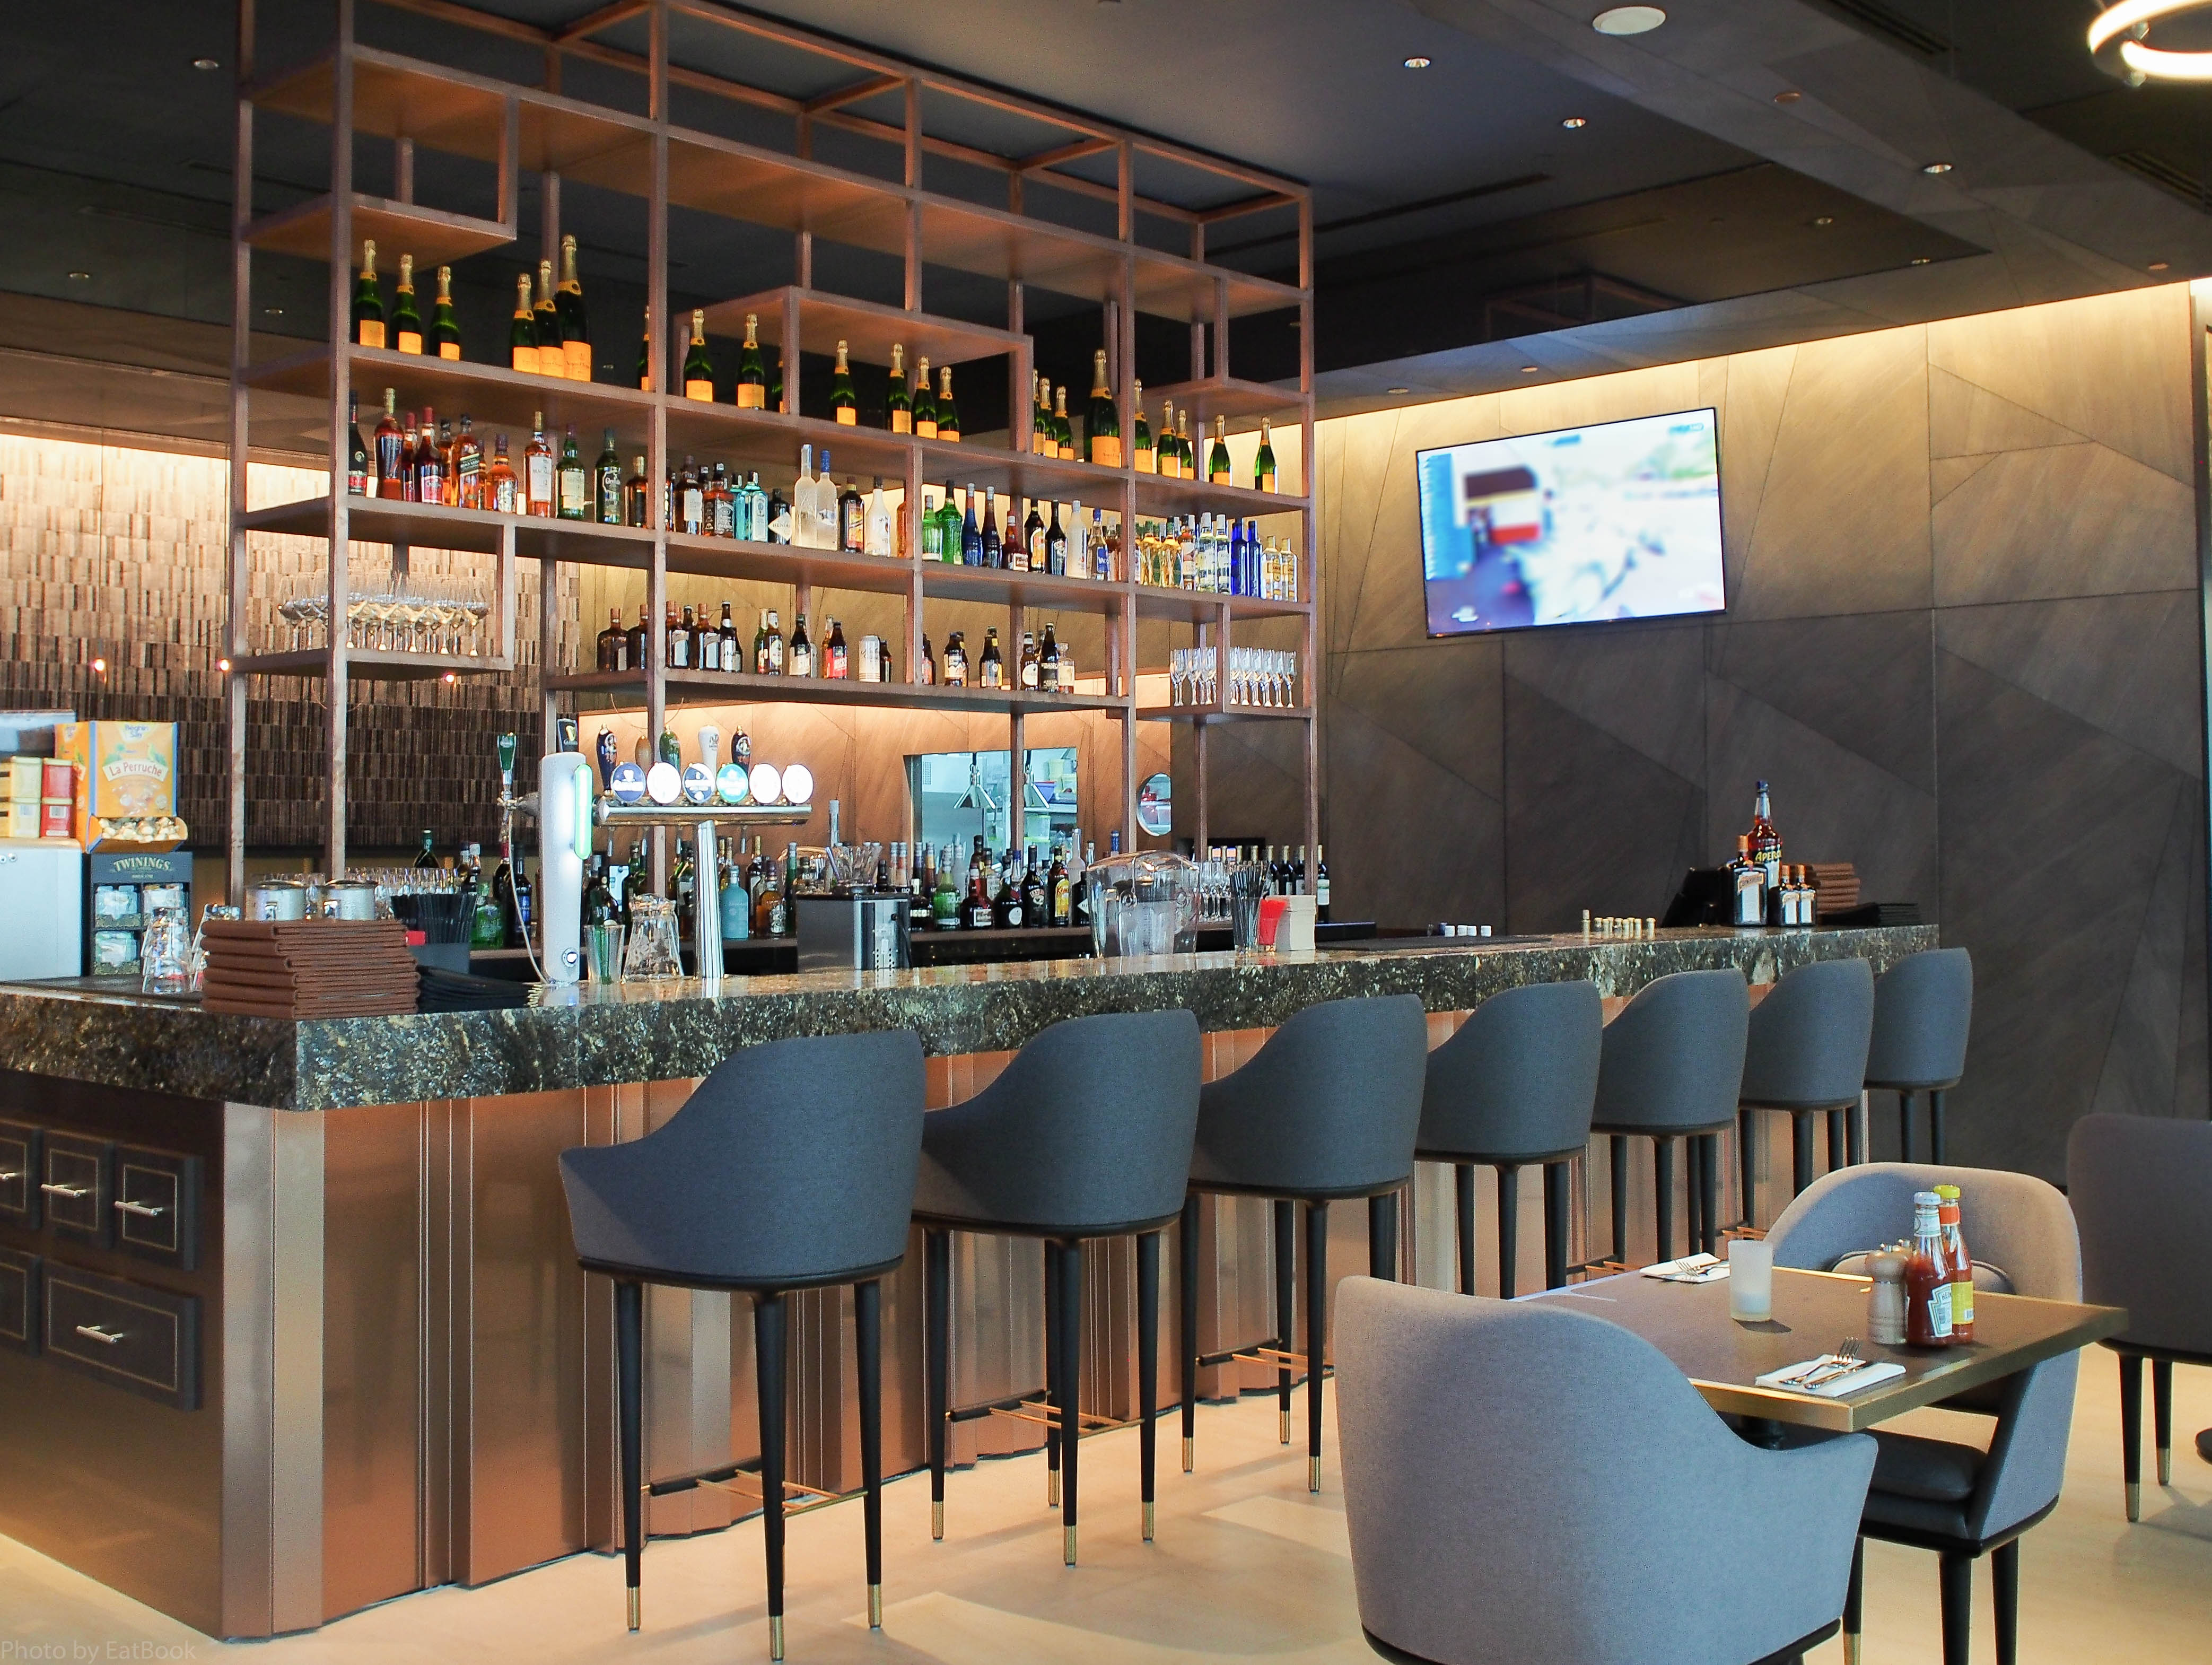 redbank bar grill review all american food finds a new home in redbank interior